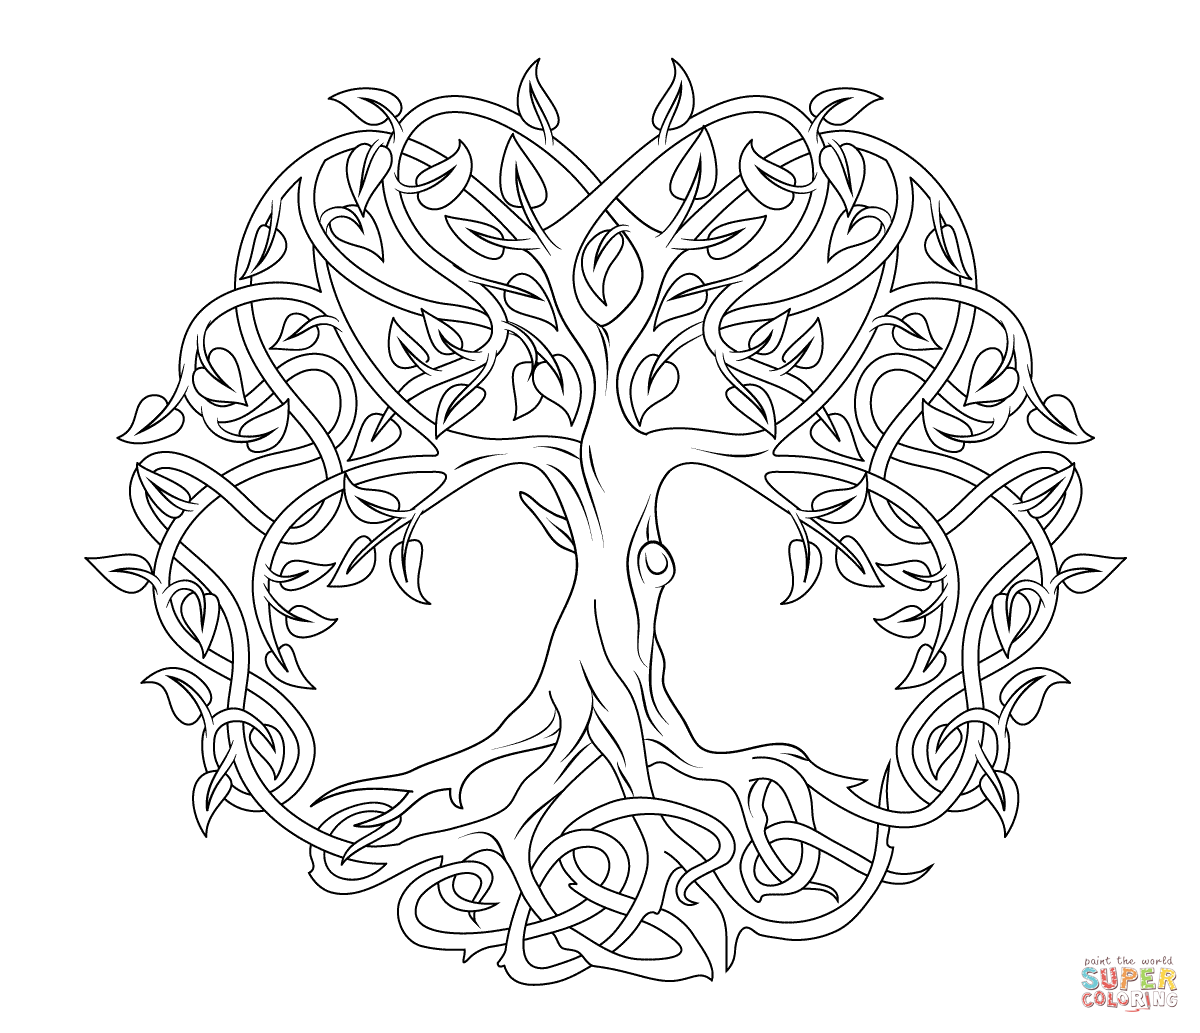 Mandala Coloring Pages Select From 27226 Printable Of Cartoons Animals Nature Bible And Many More